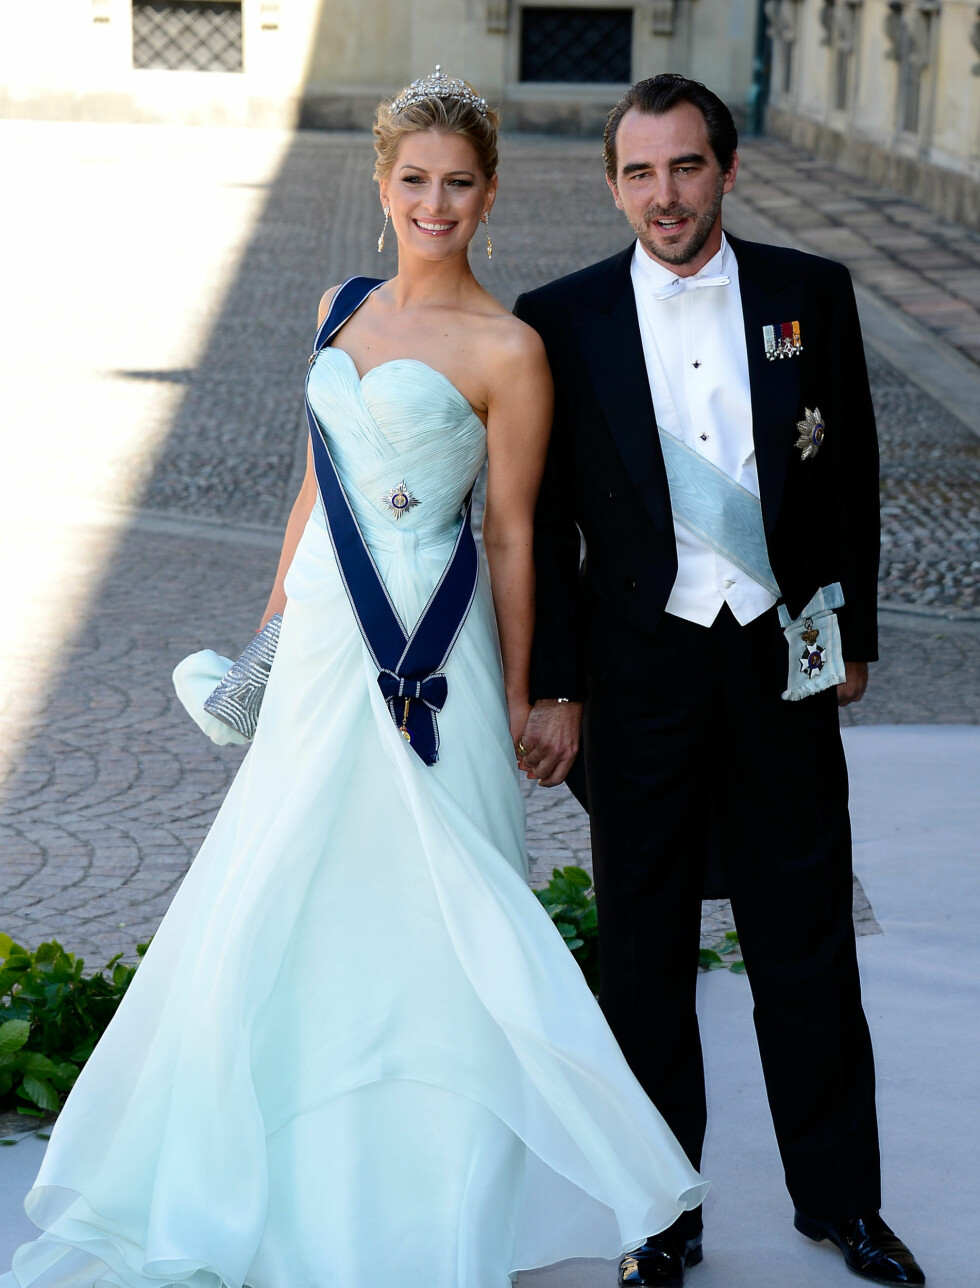 ISBLÅTT: Prins Nikolaos og Prinsesse Tatiana av Hellas. Foto: All Over Press